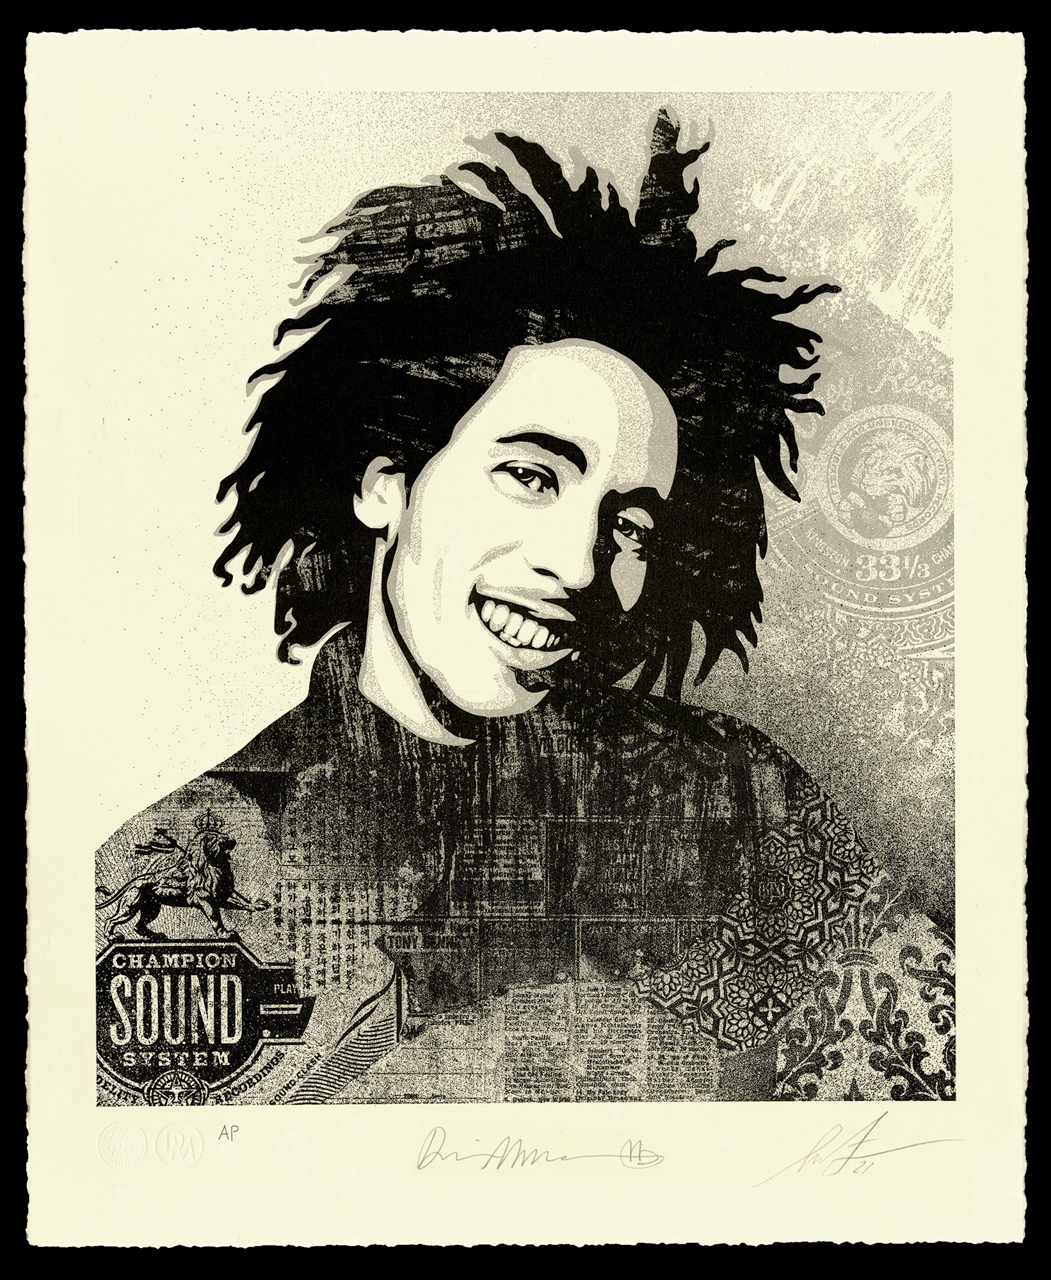 """Bob Marley 40th Letterpress - """"Lively Up Yourself"""" - 16 x 19.5 inches"""